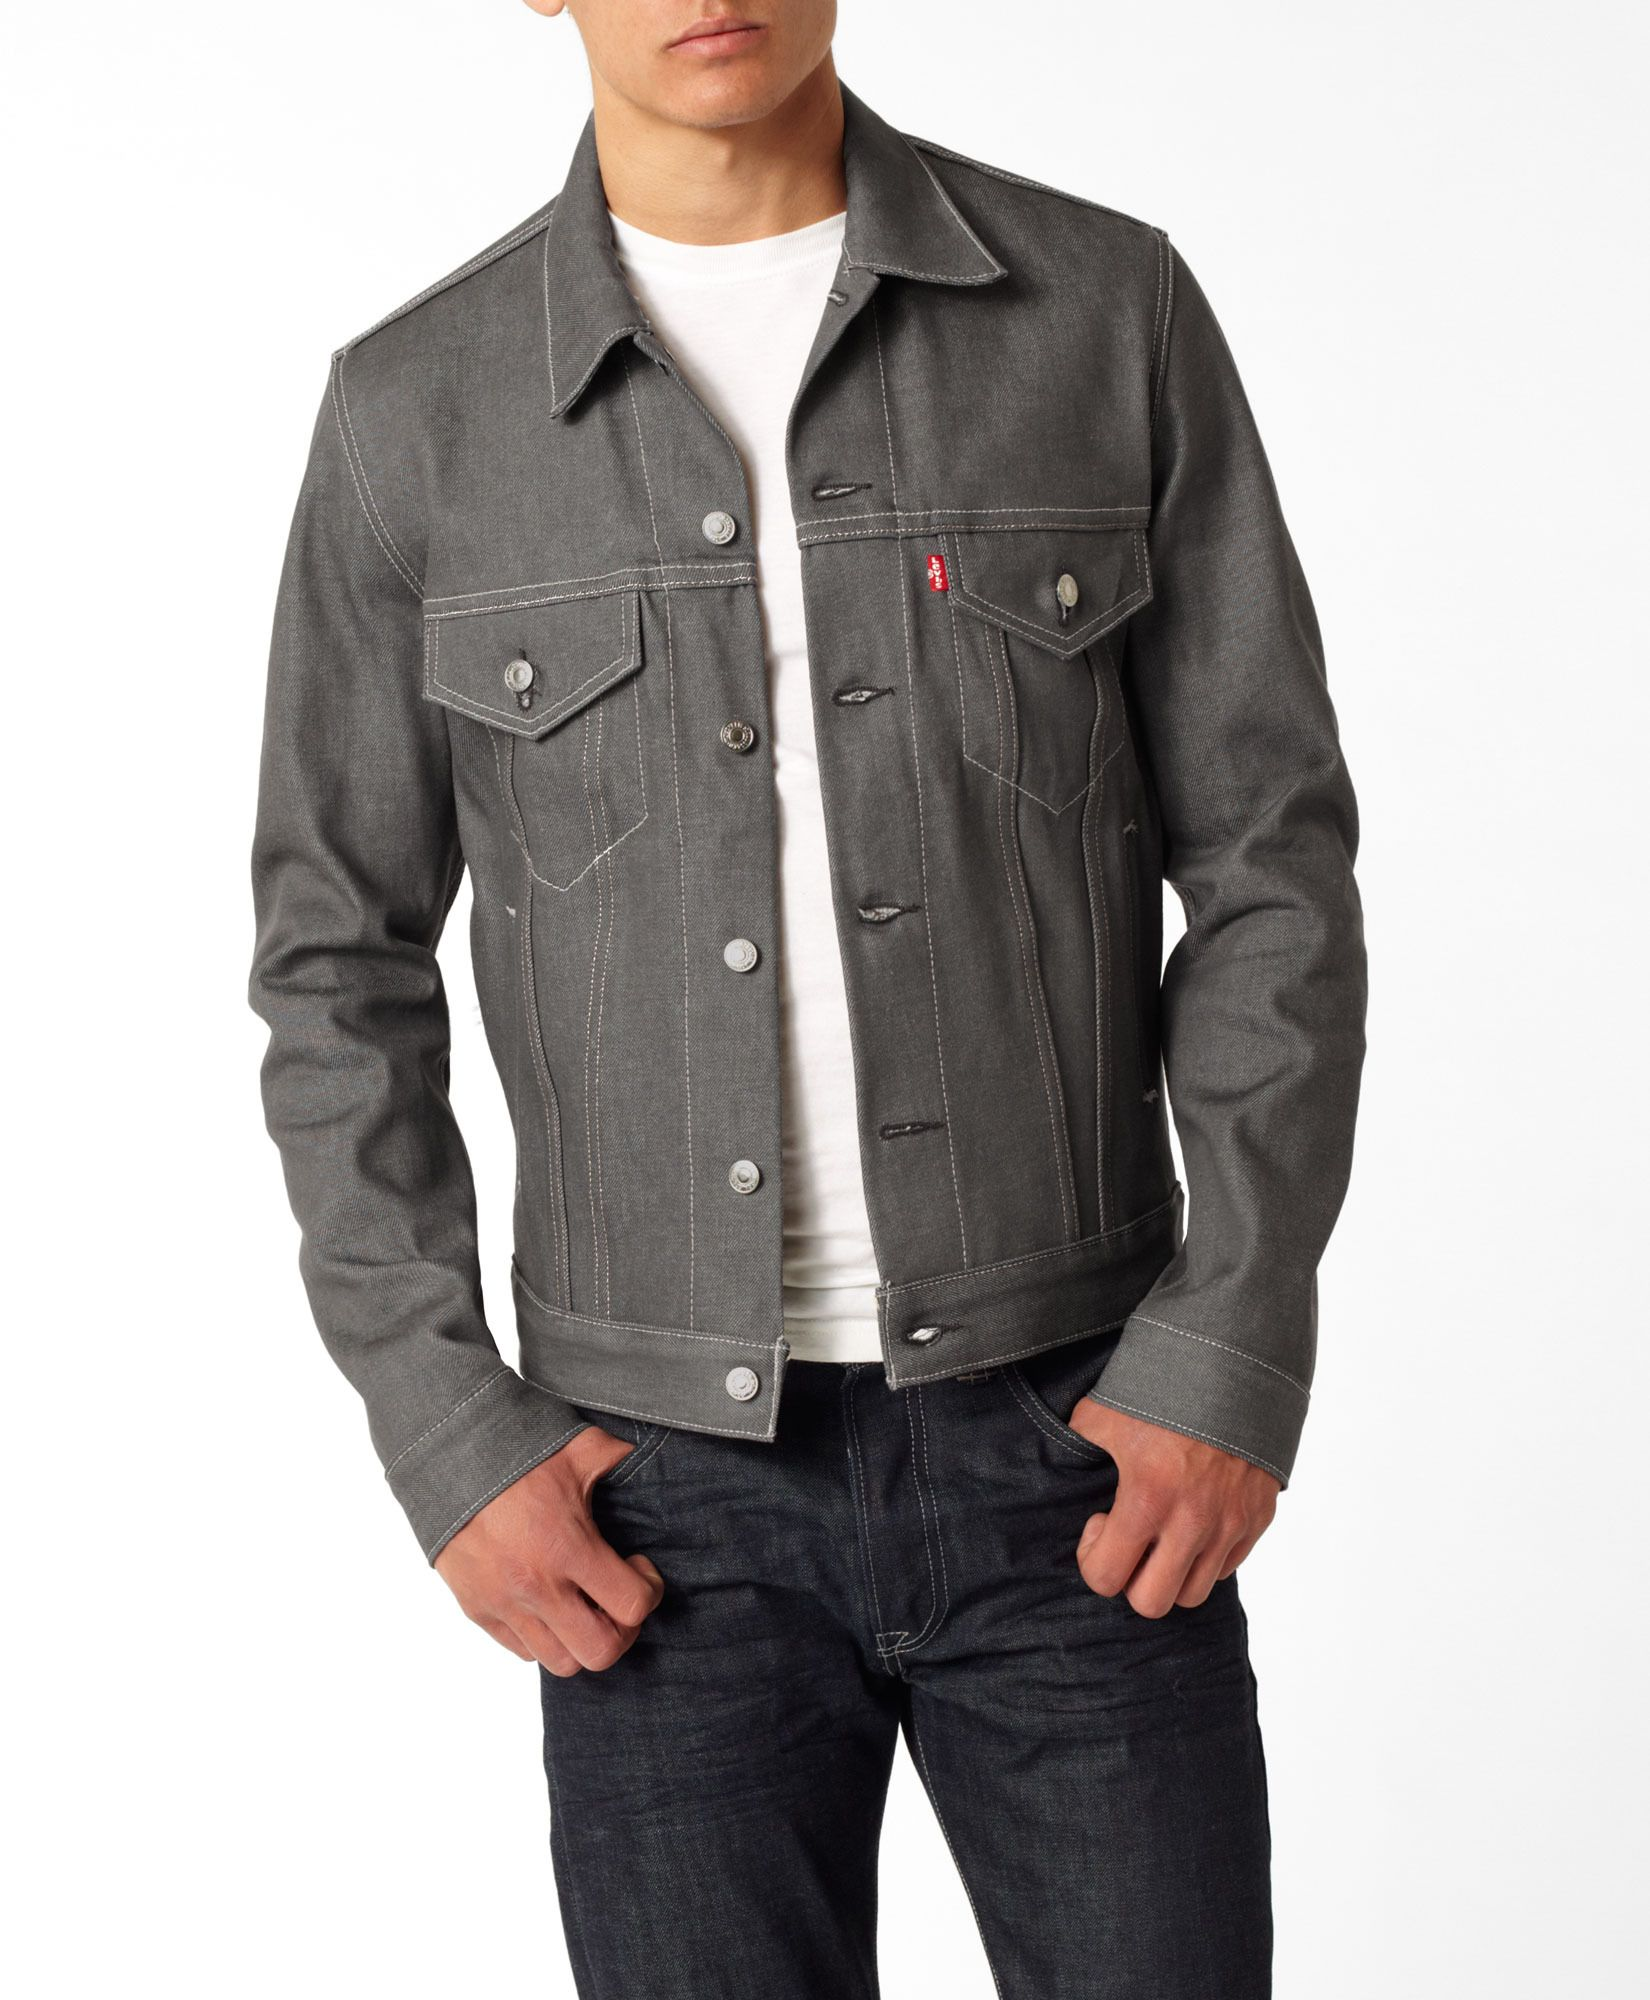 Levi's Trucker Jacket in gray. I love it for men or women